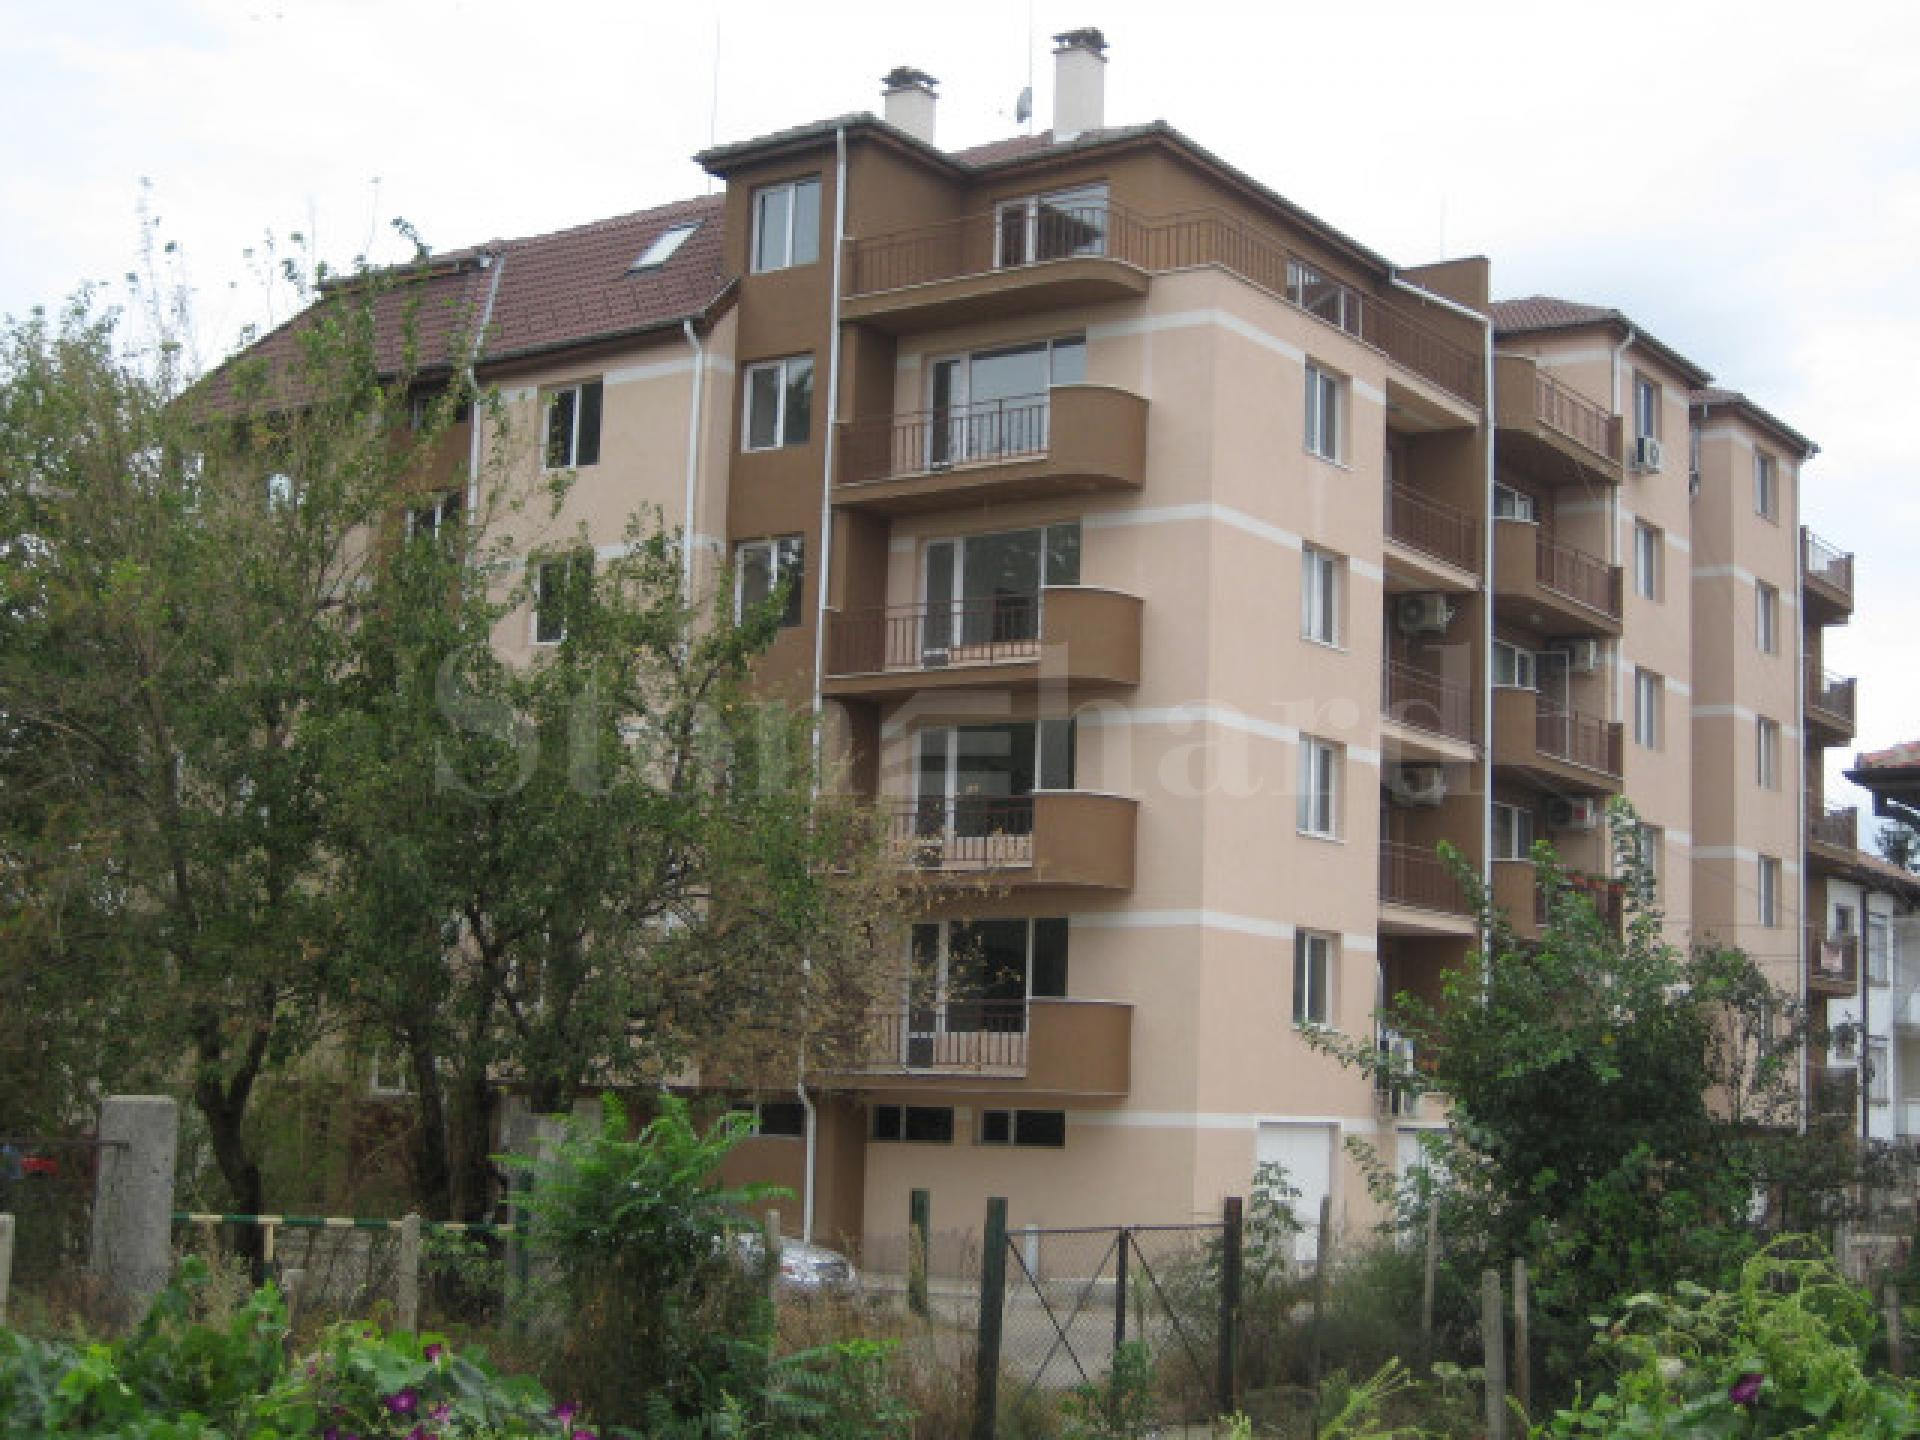 Apartments in a quiet neighborhood, not far from the center and the Danube1 - Stonehard